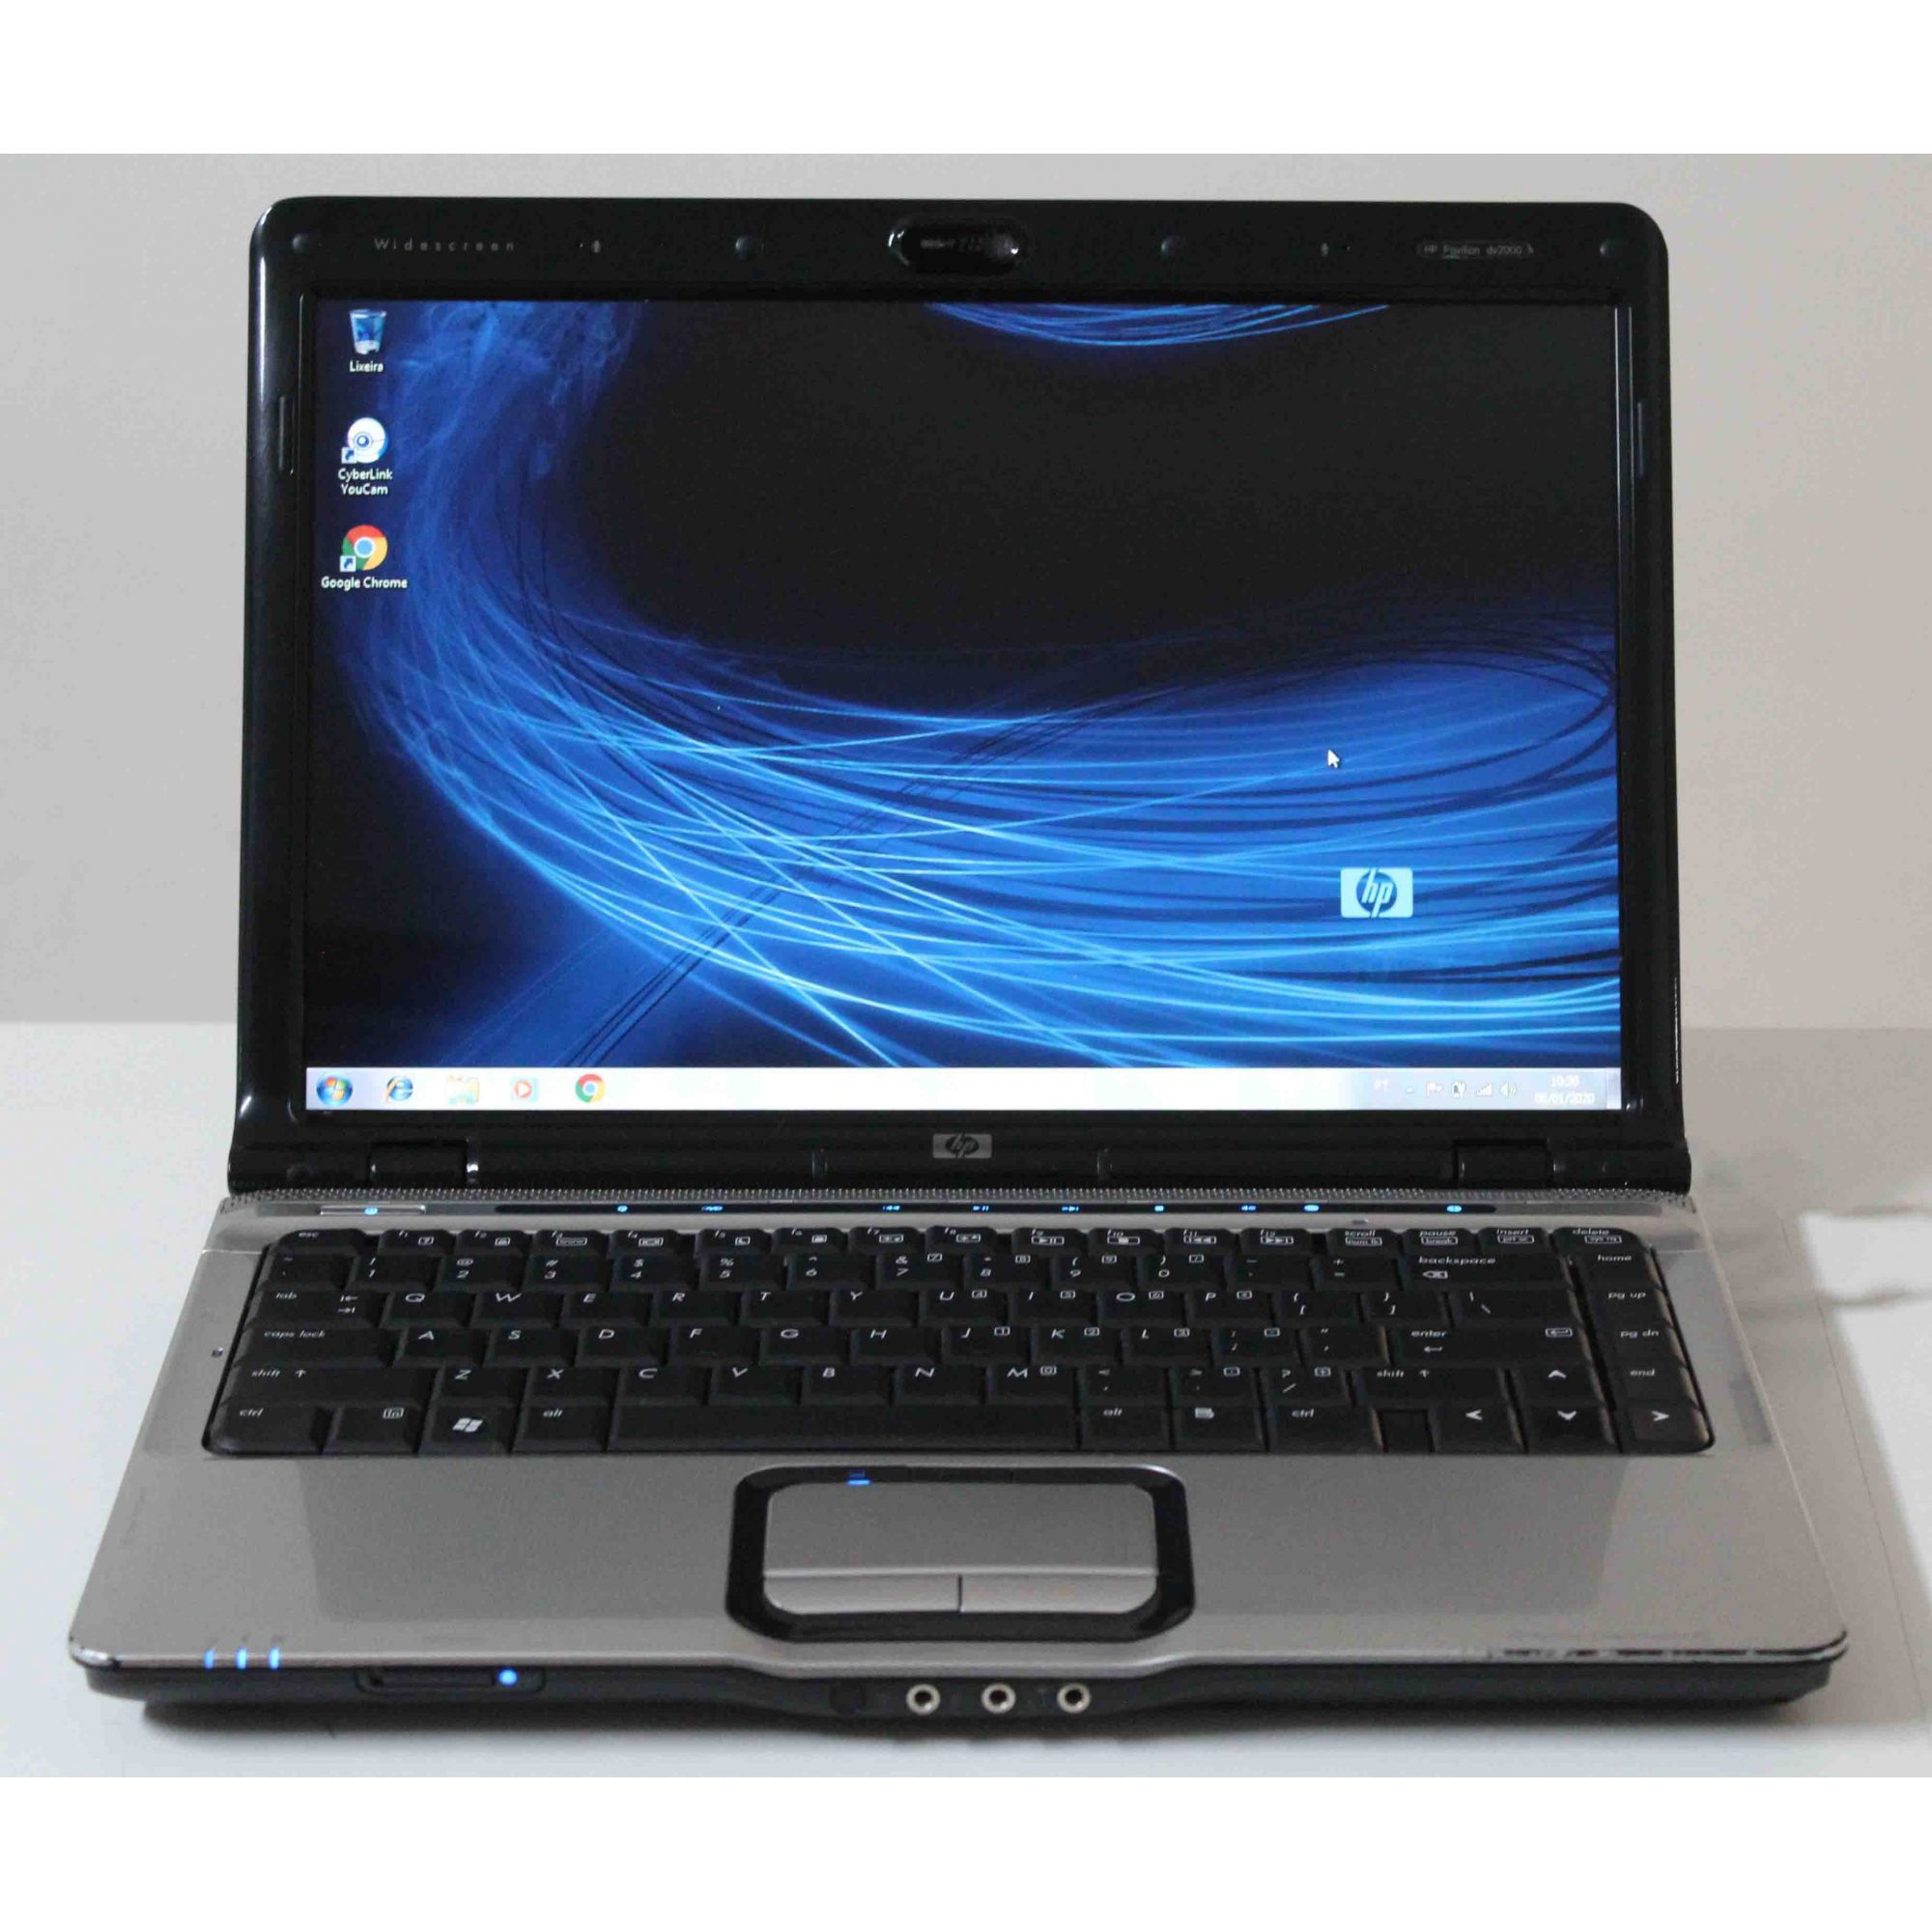 "Notebook HP Pavilion DV2700 14"" Intel Core 2 Duo 1.83GHz 4GB HD-320GB"